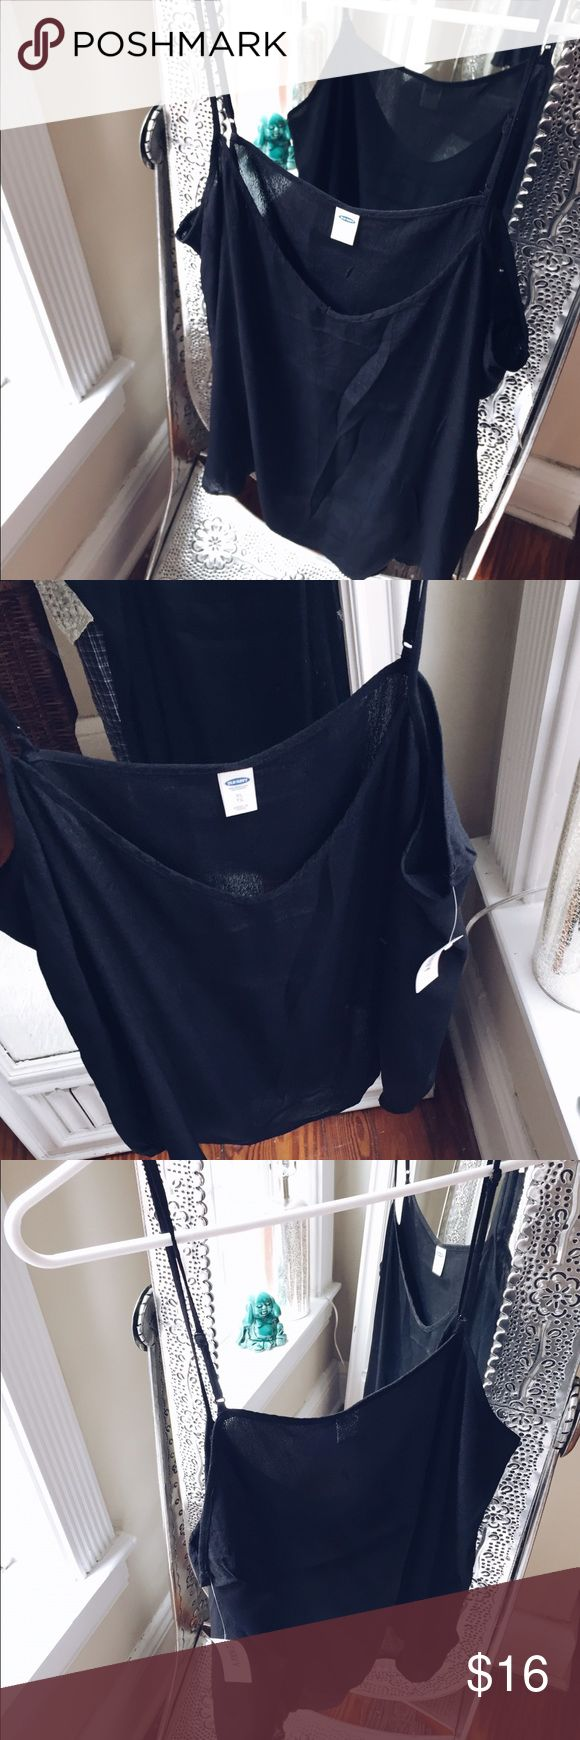 NWT 90s tank Beautiful black tank, linen like material 🍃 Tags: grunge, tee shirt dress, brandy Melville, urban outfitters, Zara, asos, gold, black, same day shipping, suggested user, elephant, hamsa, tapestry, spirituality, plunge neck, loose, oversized, flannel, boyfriend jeans Old Navy Tops Tank Tops